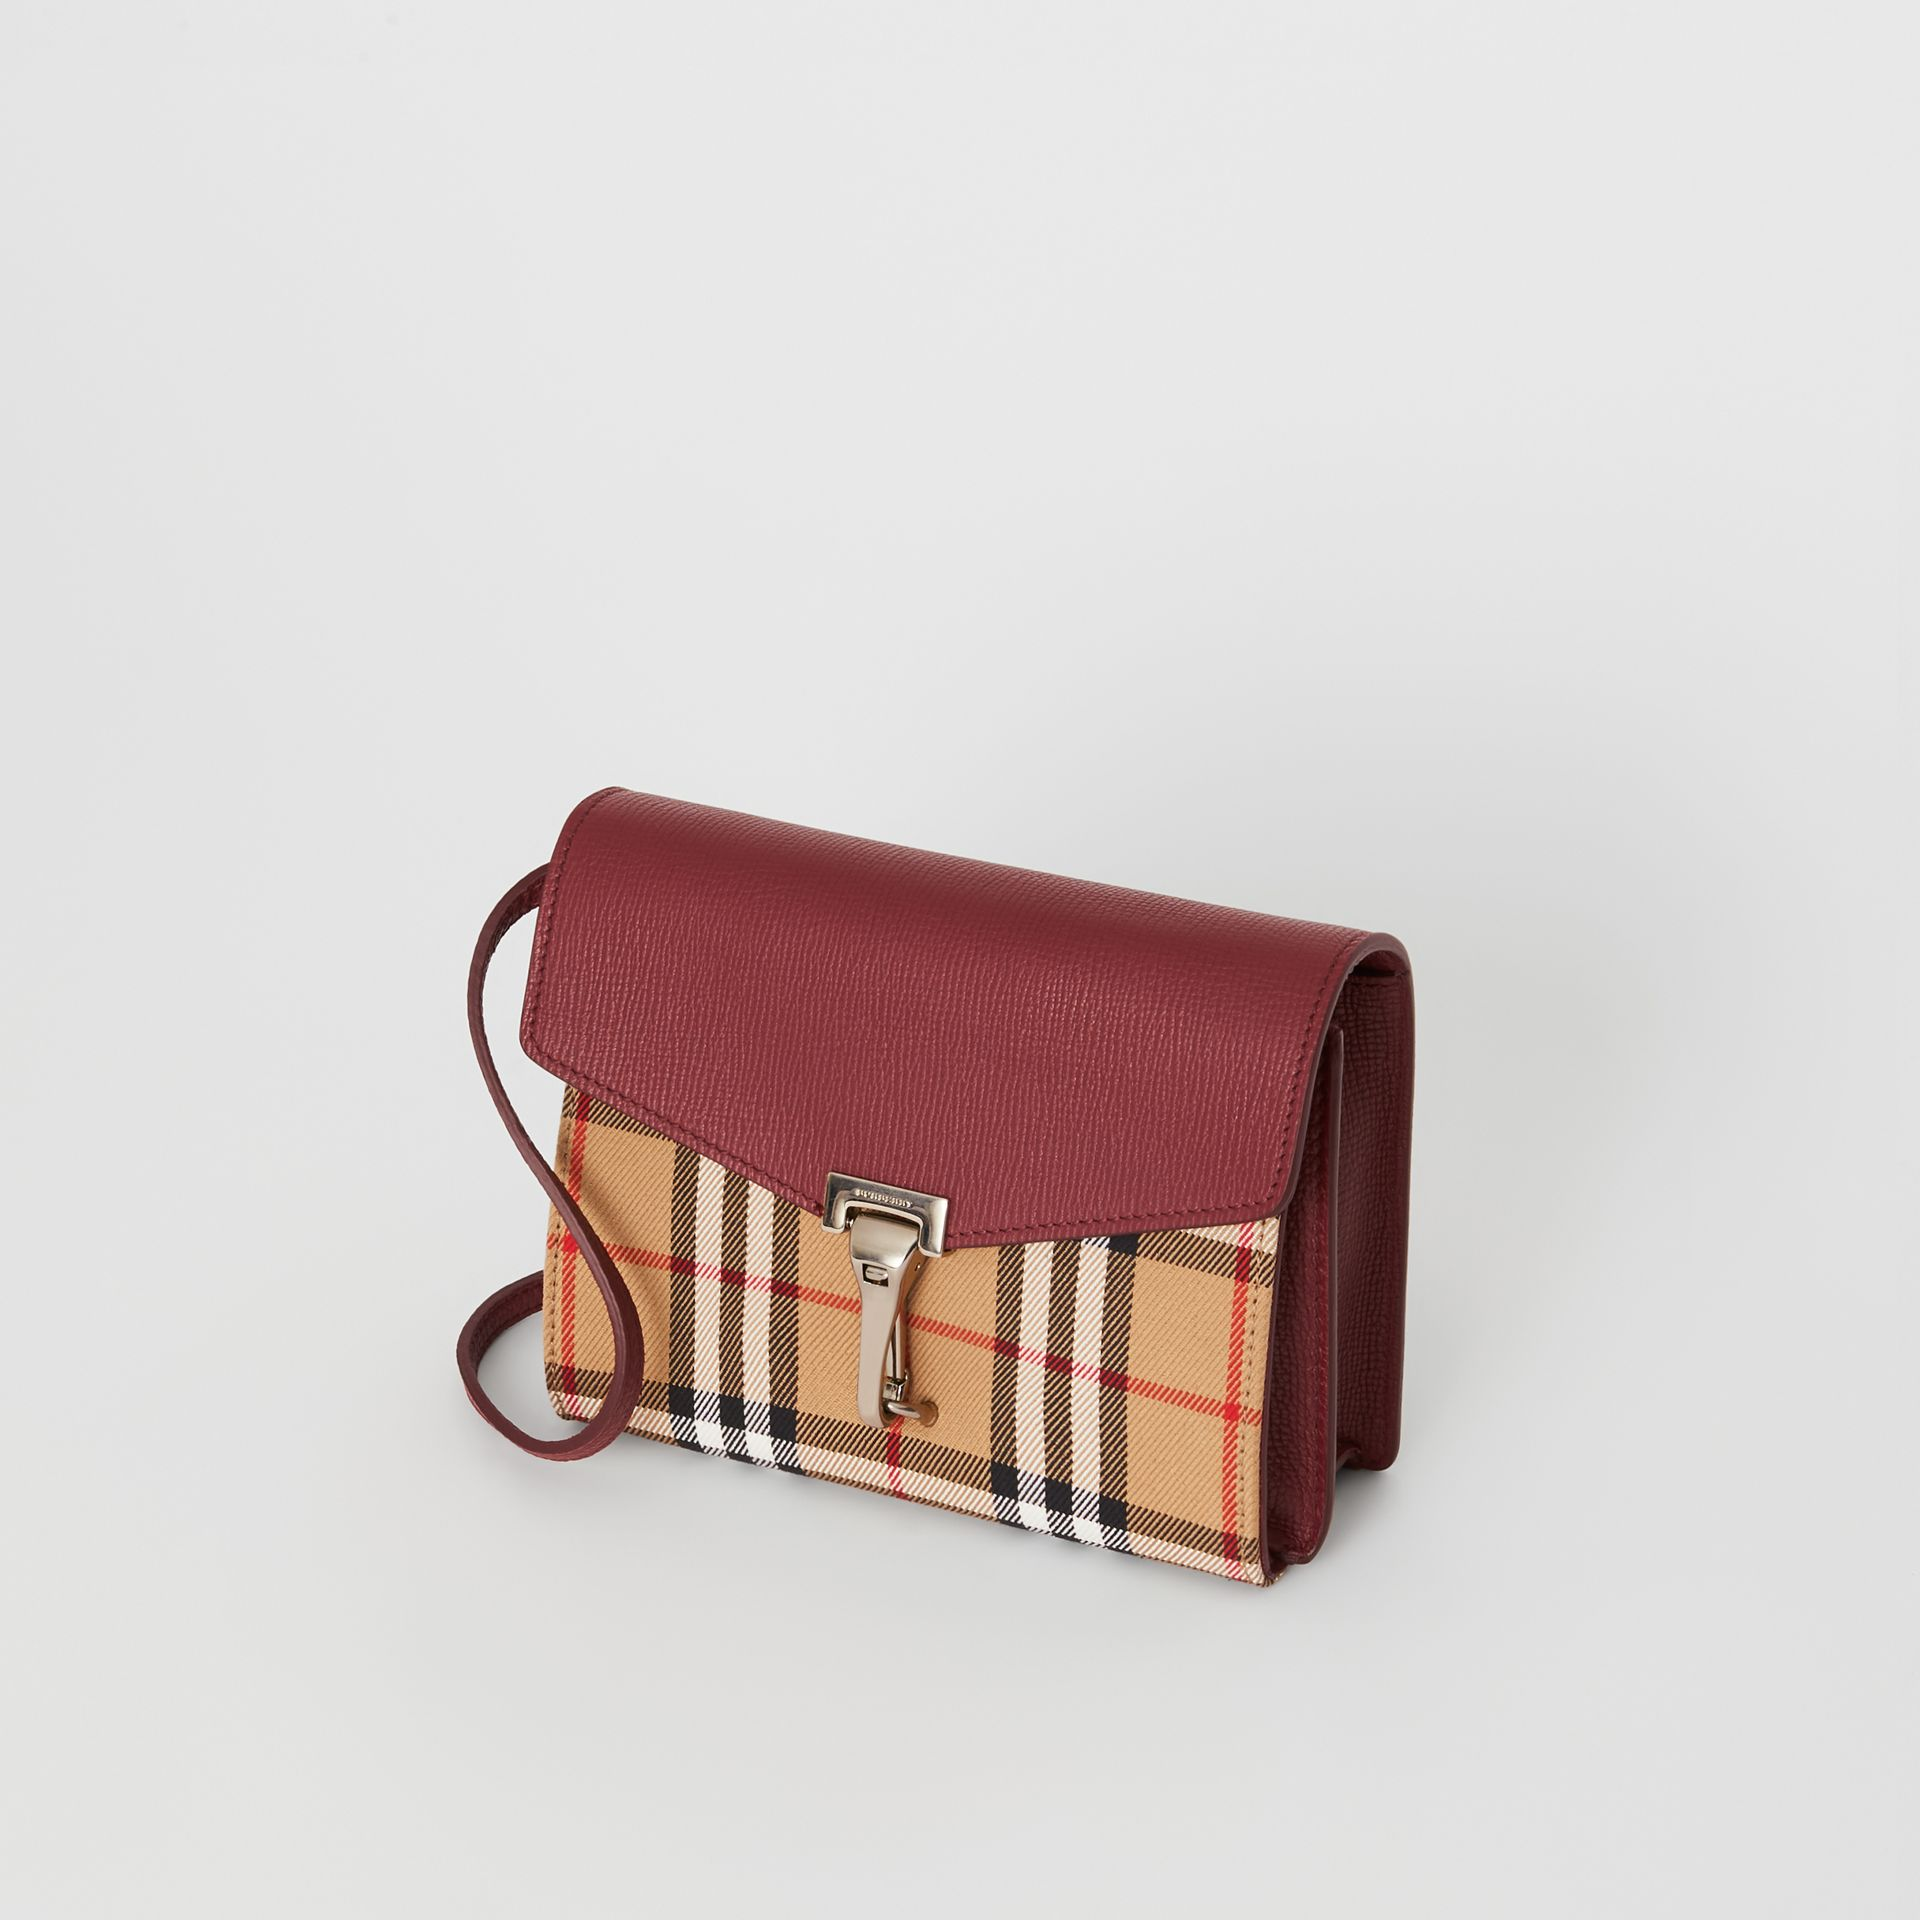 Mini Leather and Vintage Check Crossbody Bag in Crimson - Women | Burberry - gallery image 2